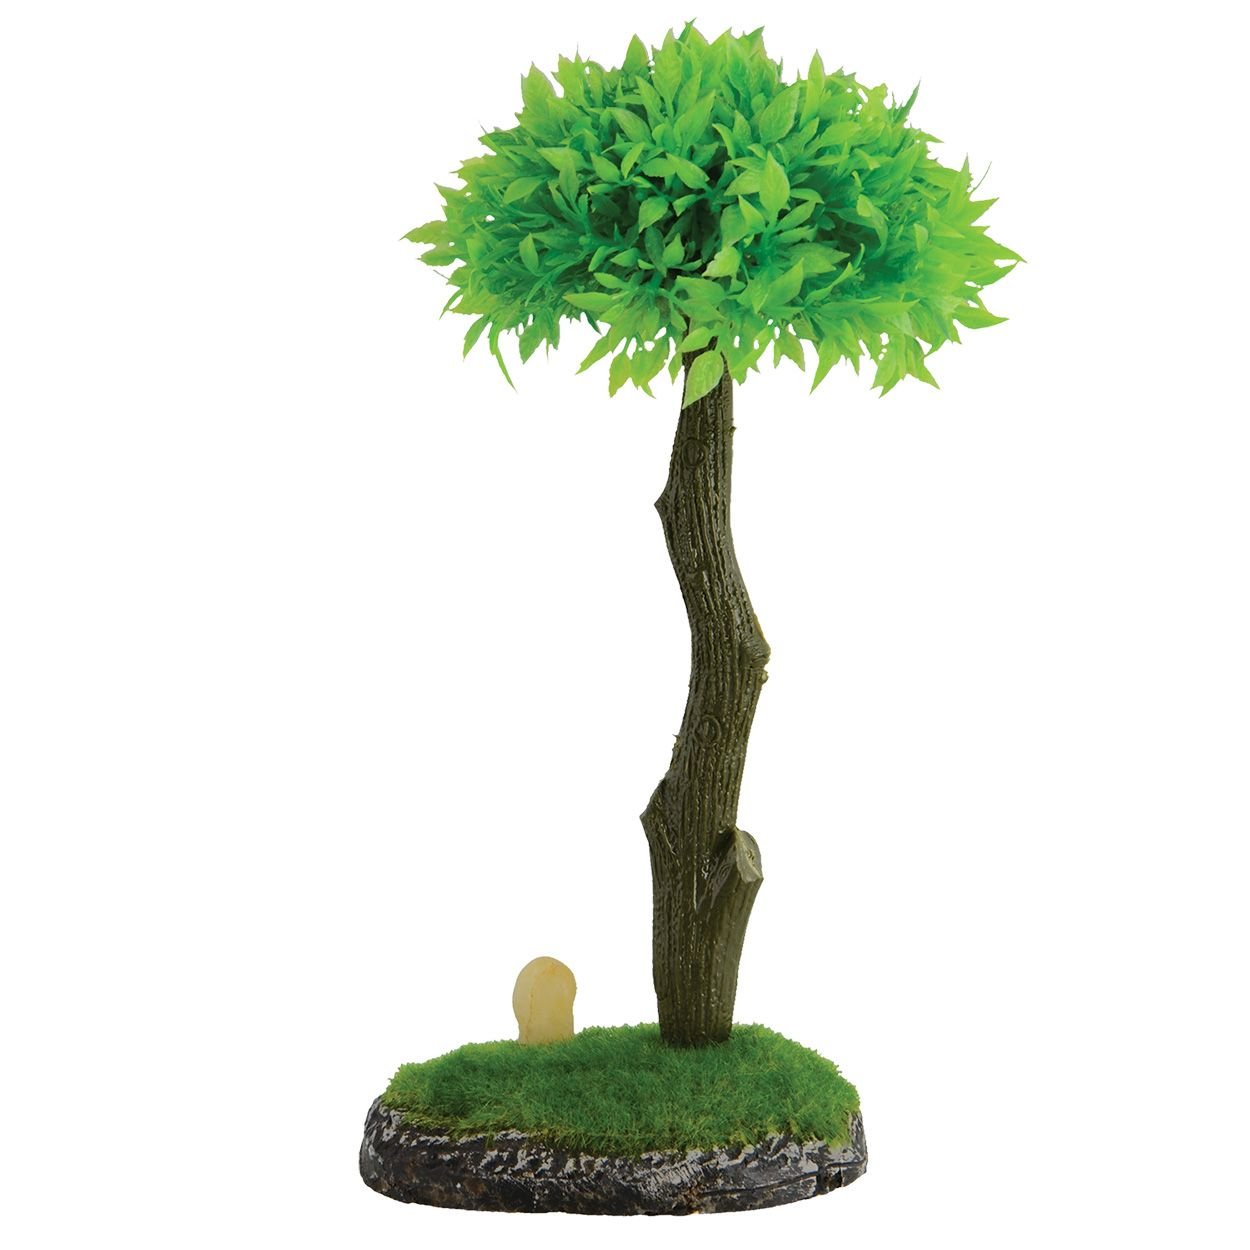 Underwater Treasures Bonsai Green Tree - 7 inch